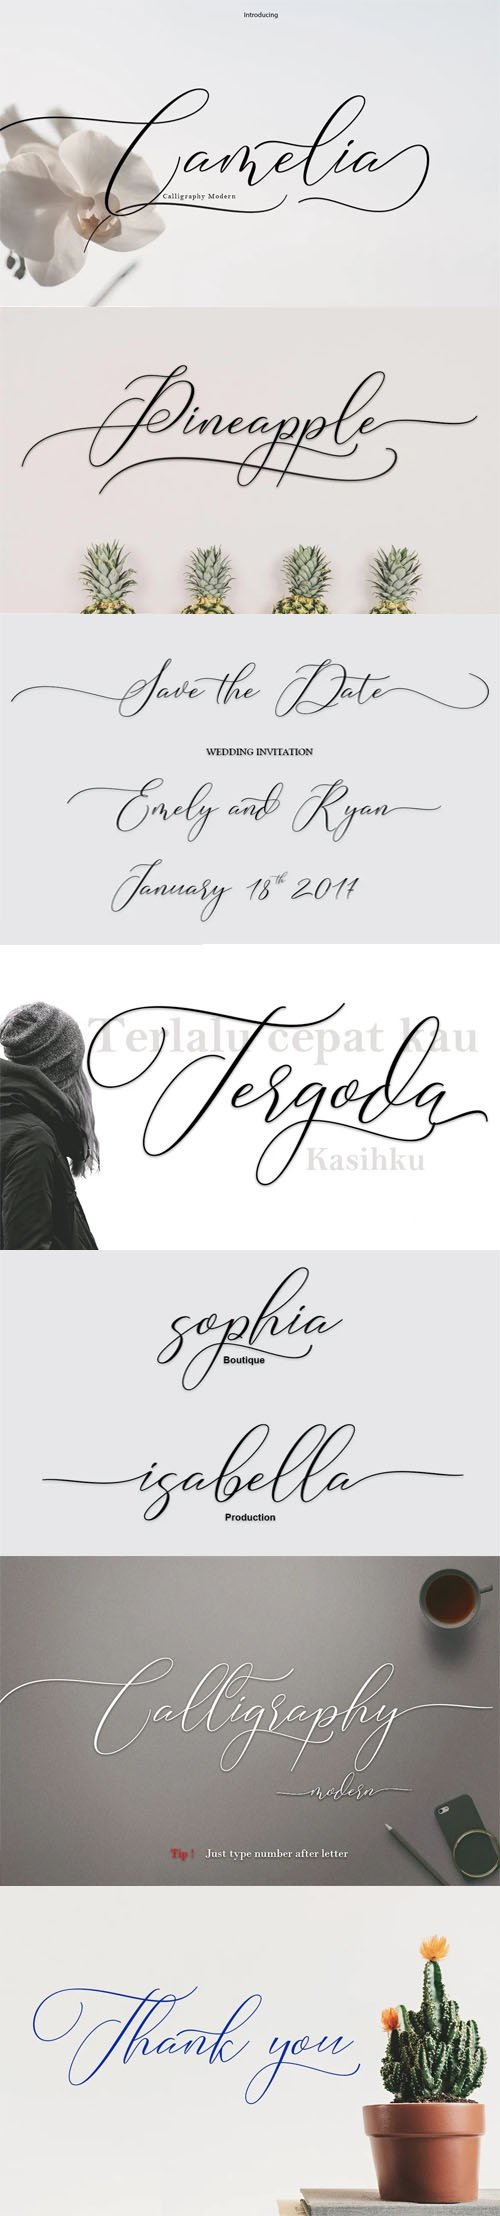 Camelia Calligraphy - Modern Script Typeface